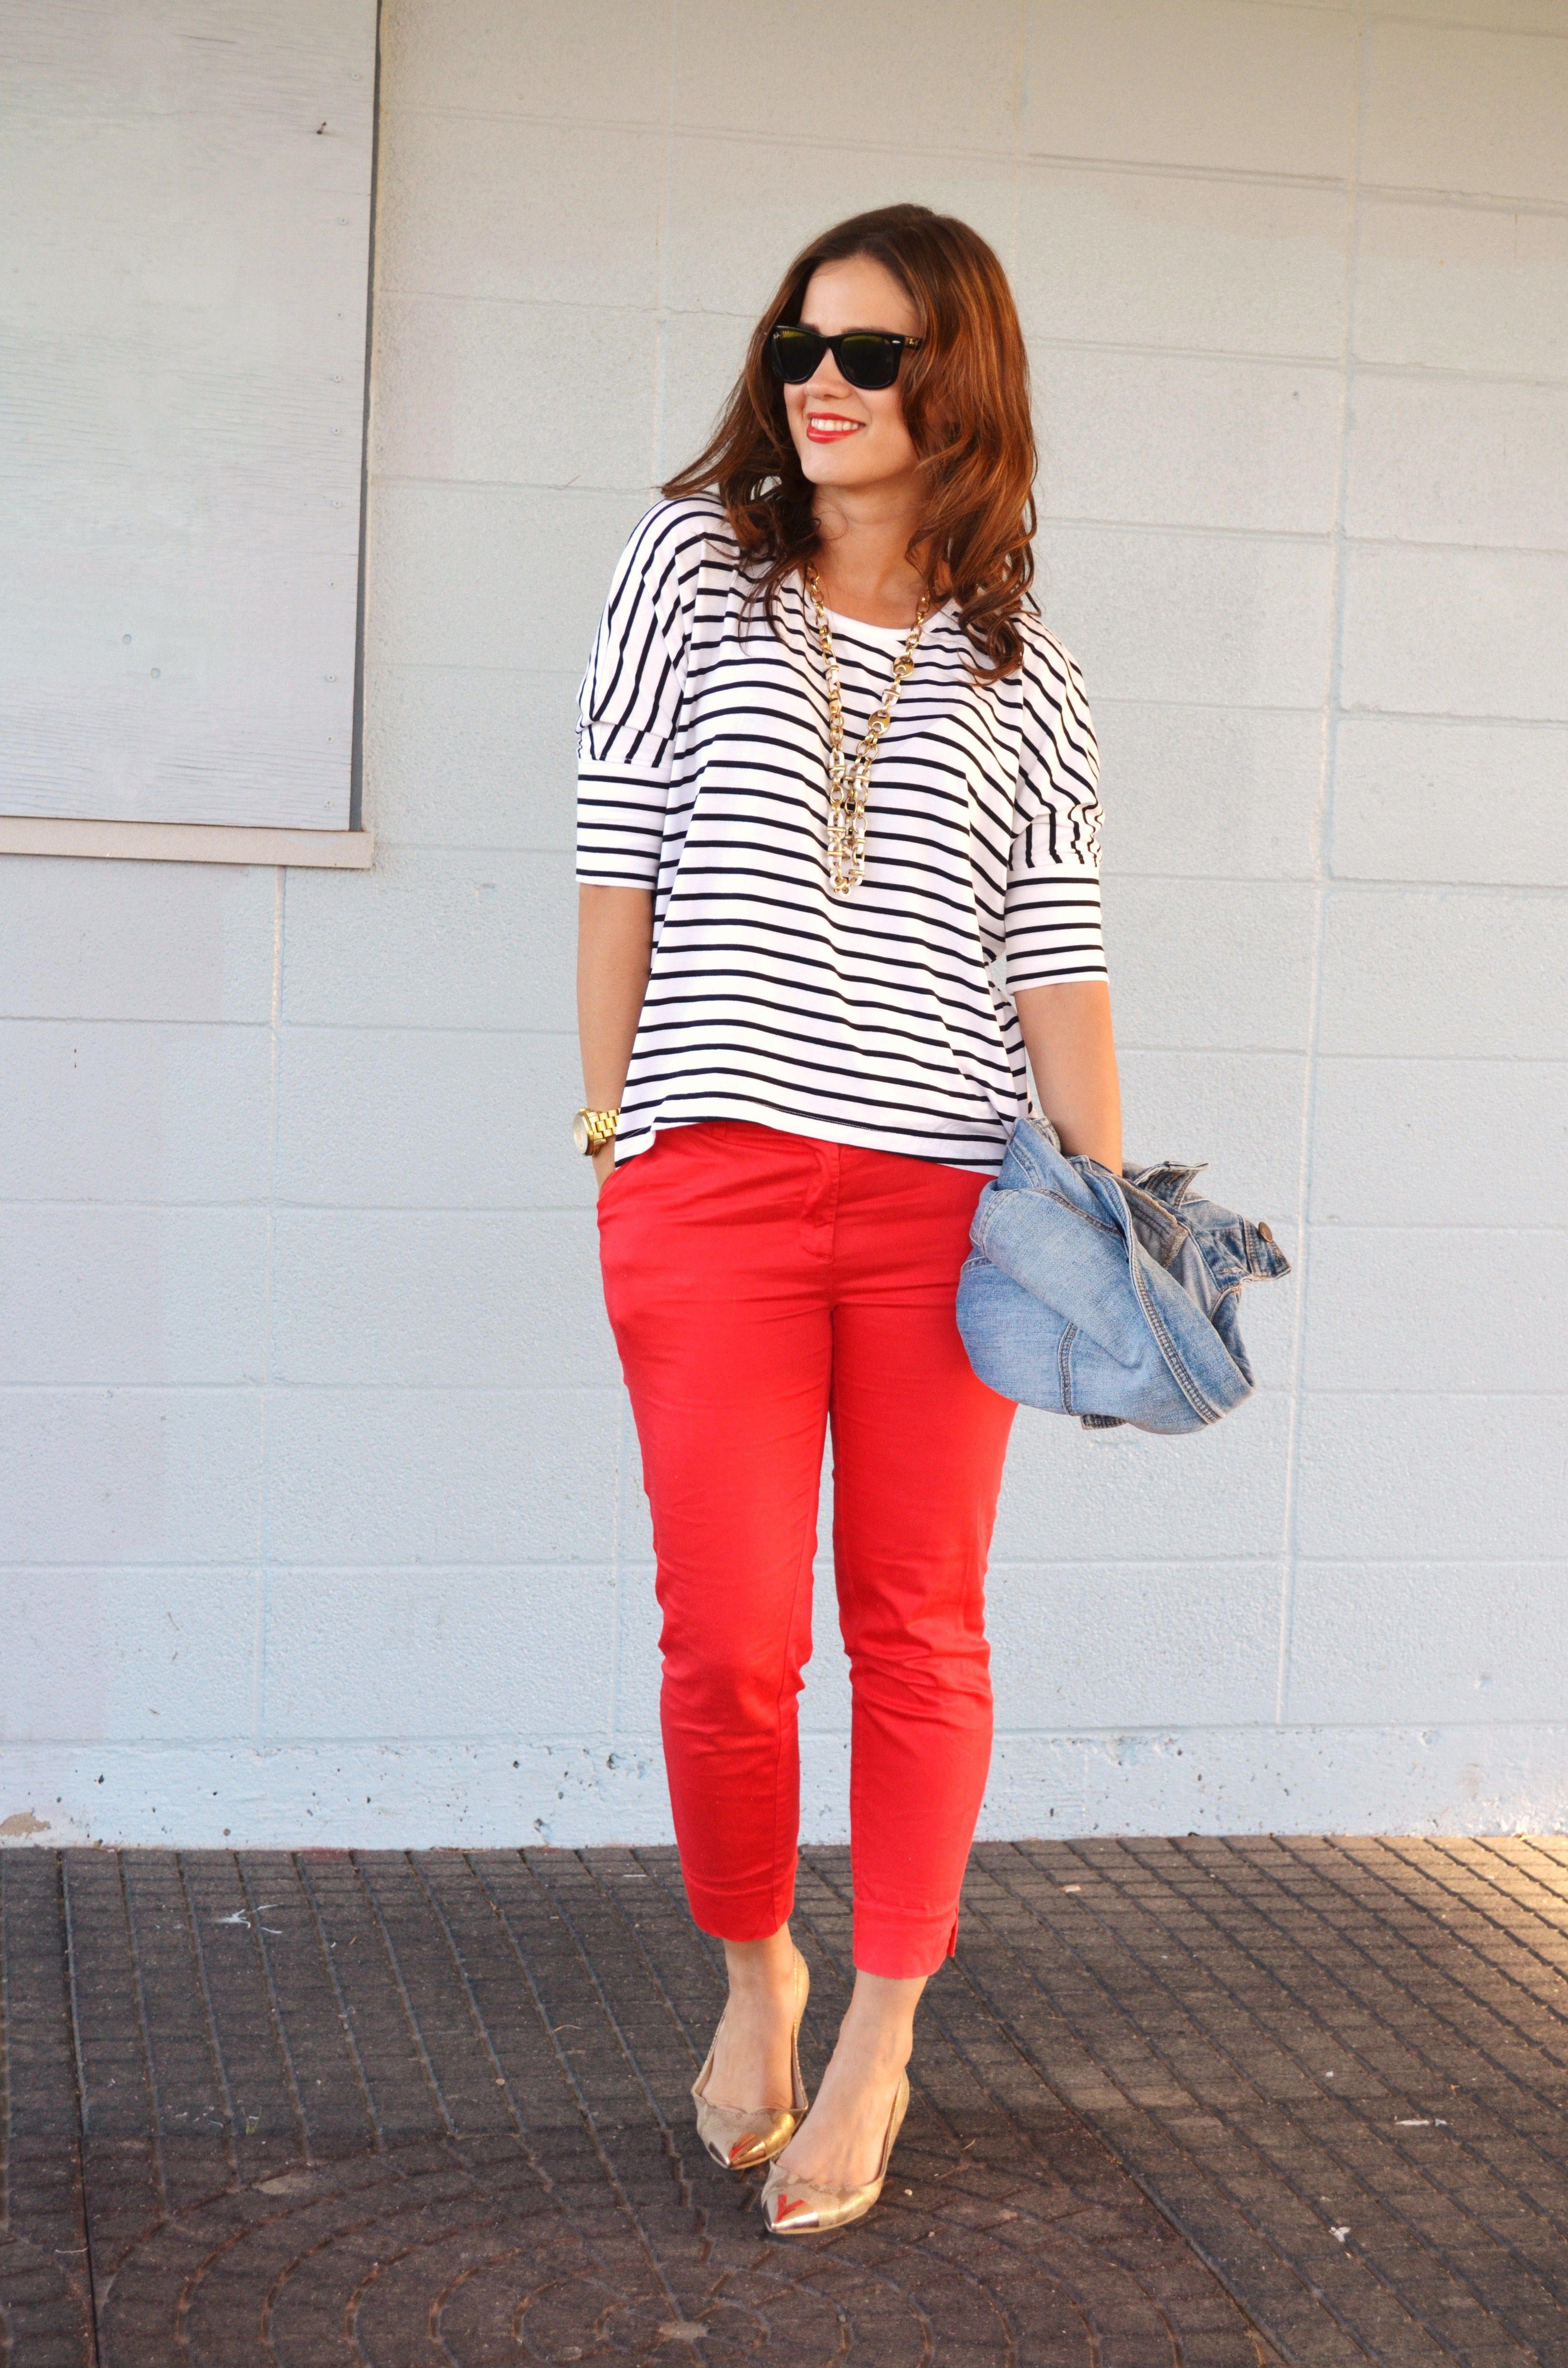 bornlippy  red pants  stripes  red pants outfit red